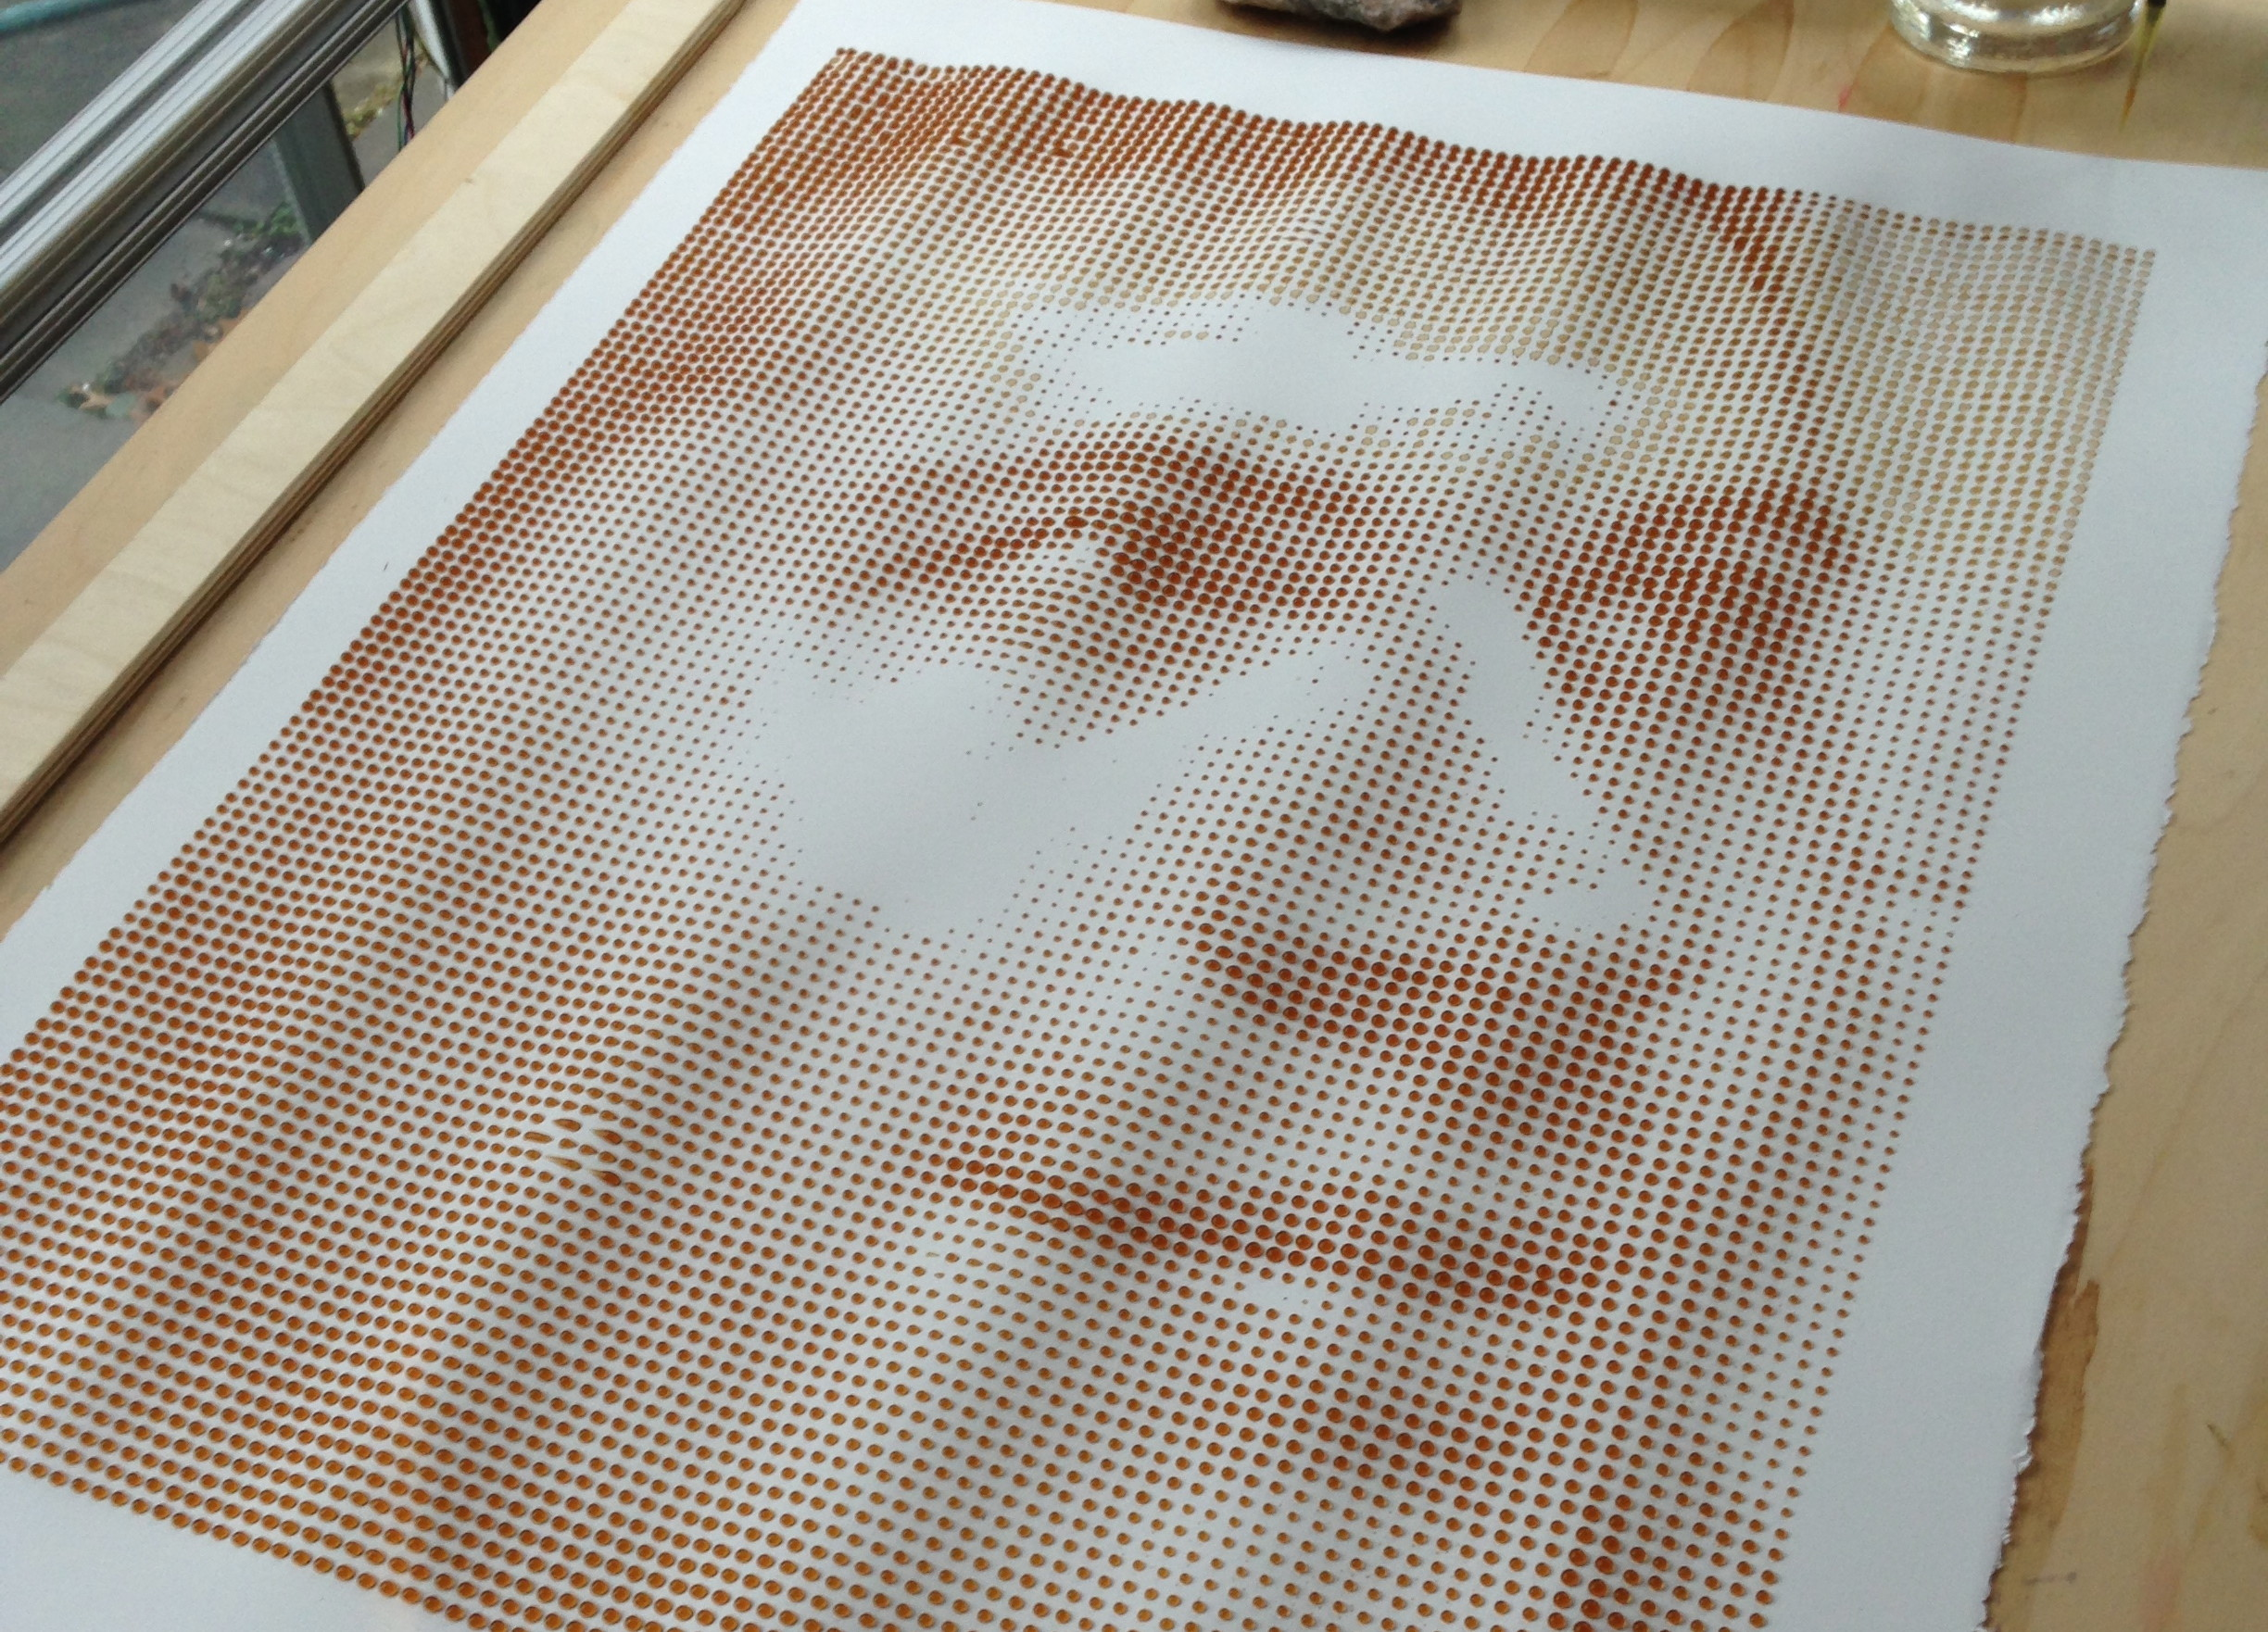 This Machine Prints Portraits with 8,000 Drops of Coffee